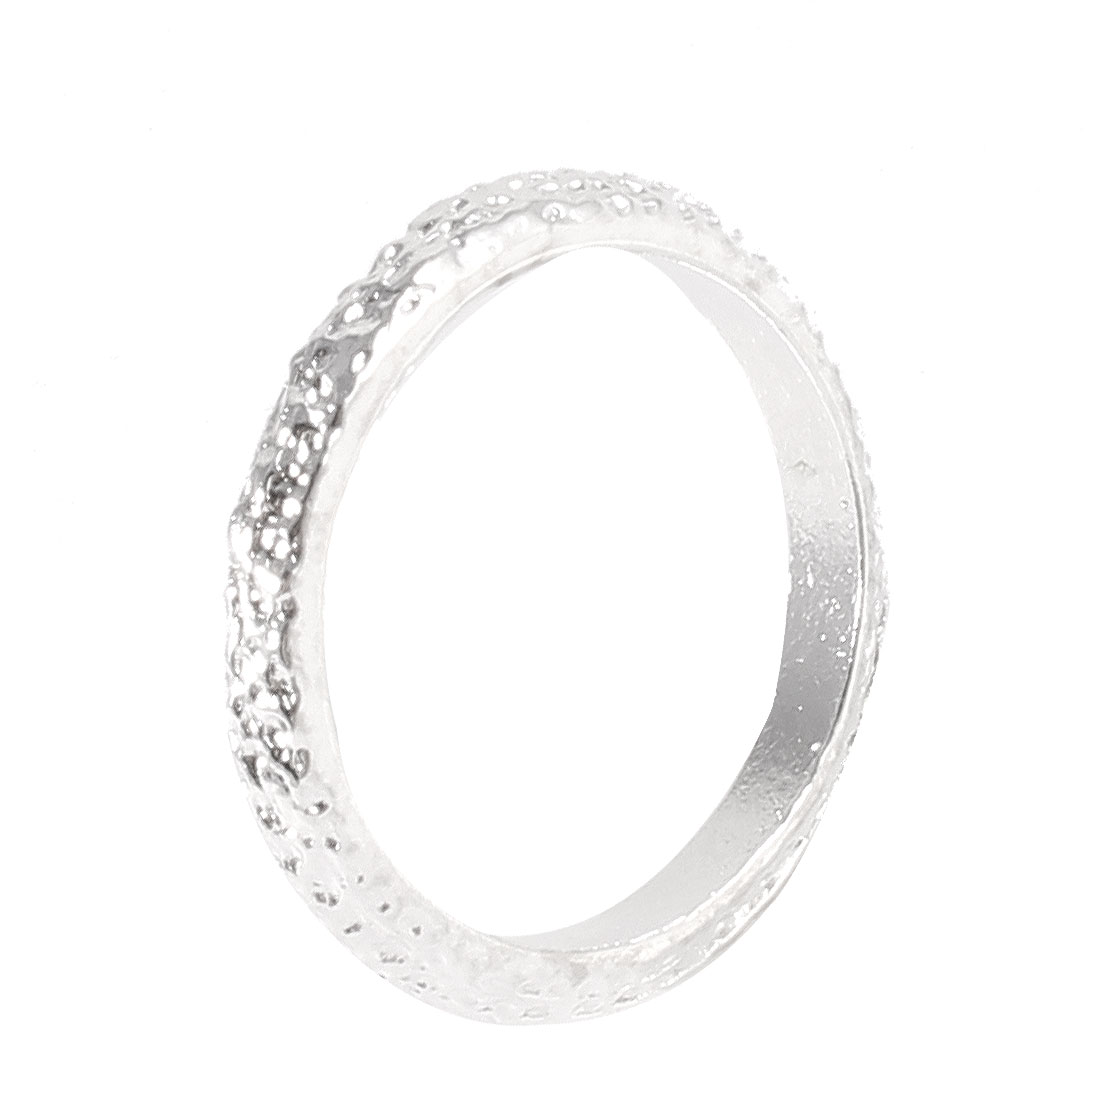 Silver Tone Metal Glitter Finger Tail Ring Hoop Decoration for Ladies